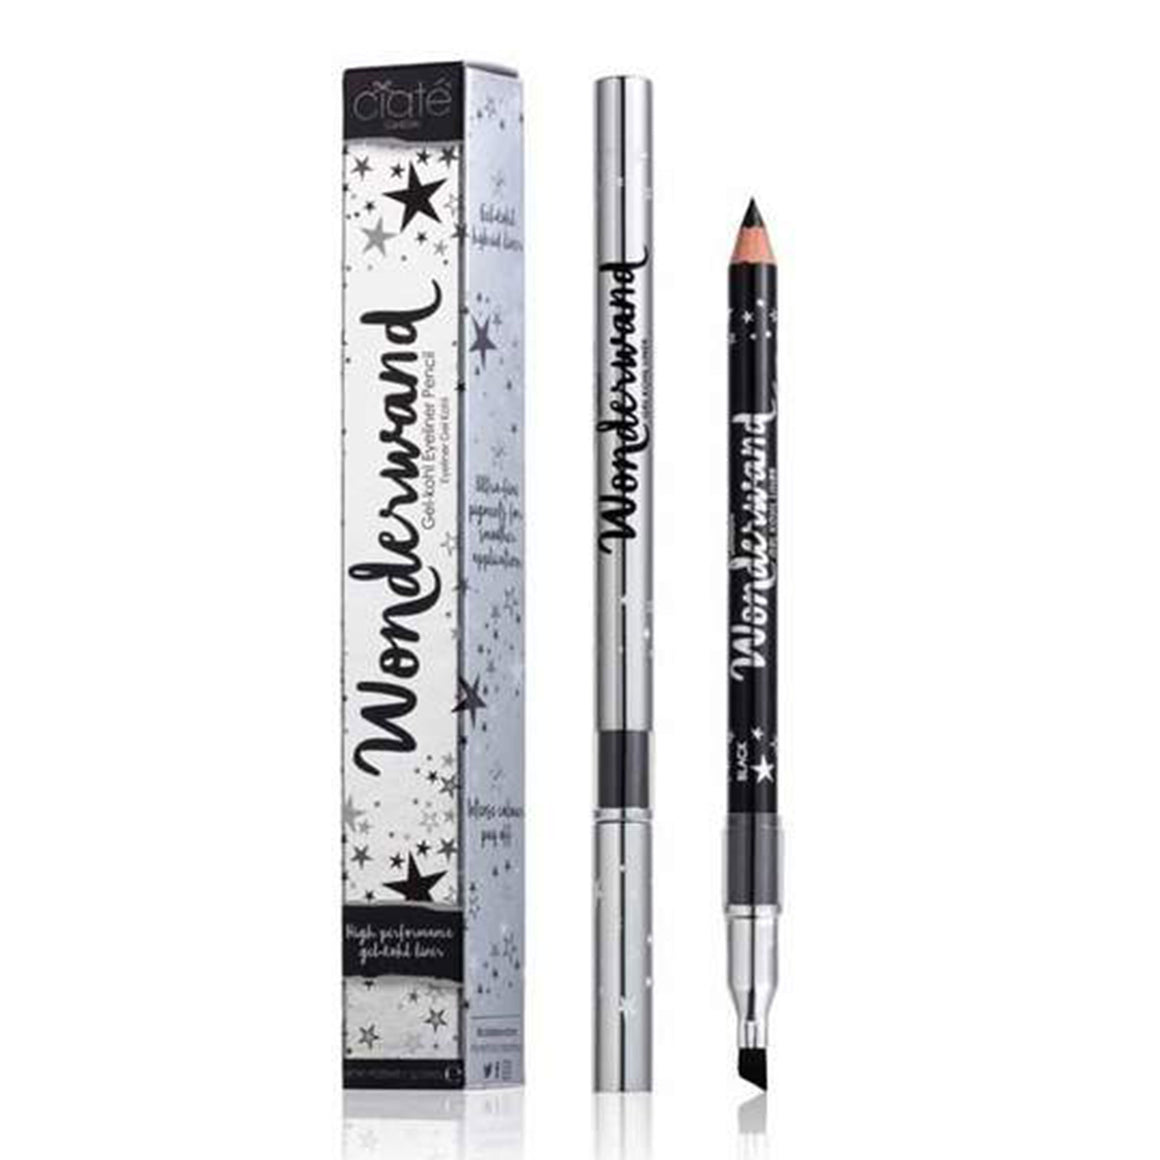 Ciate London - Wonderwand Gel Kohl Liner 1.1g